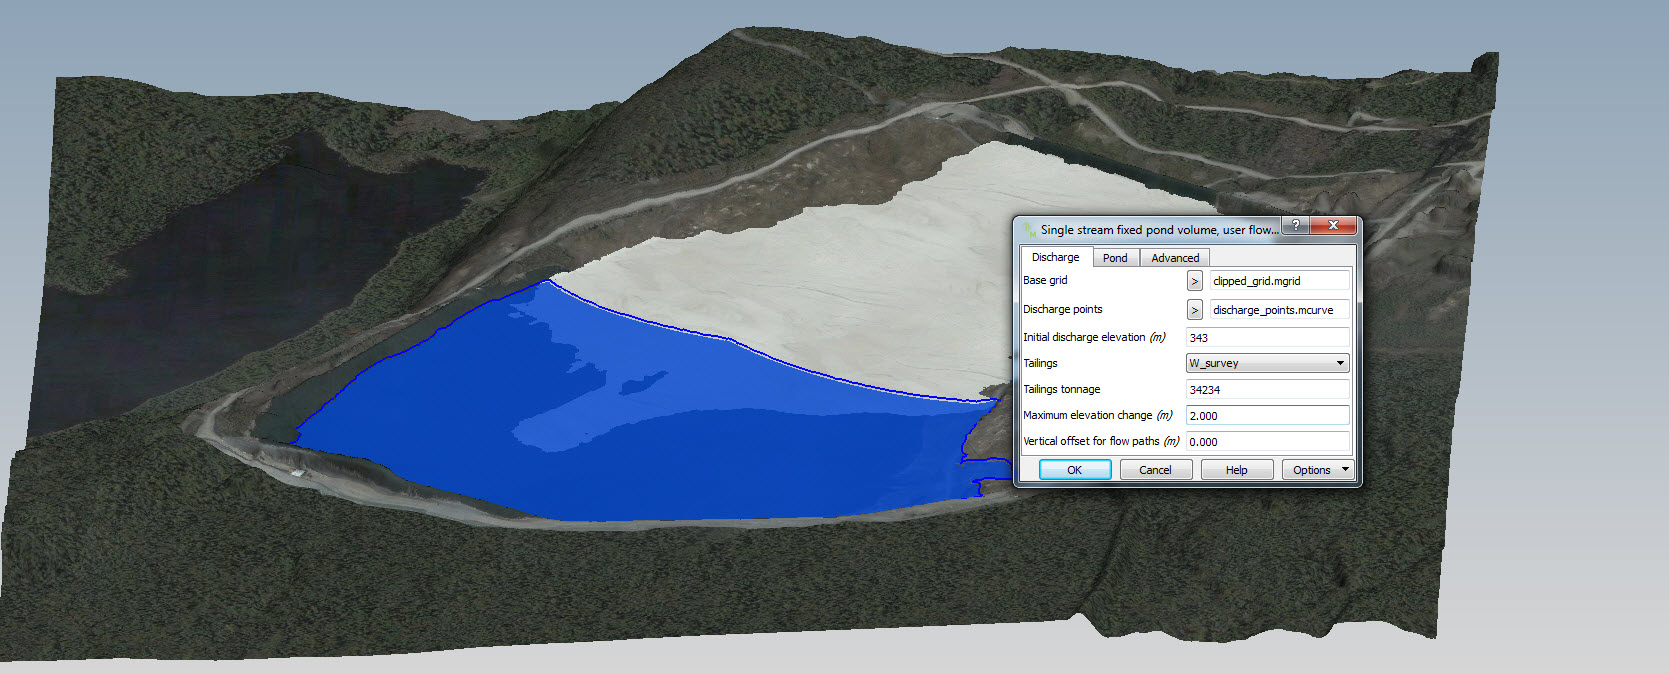 Powerful tools designed specifically for tailings